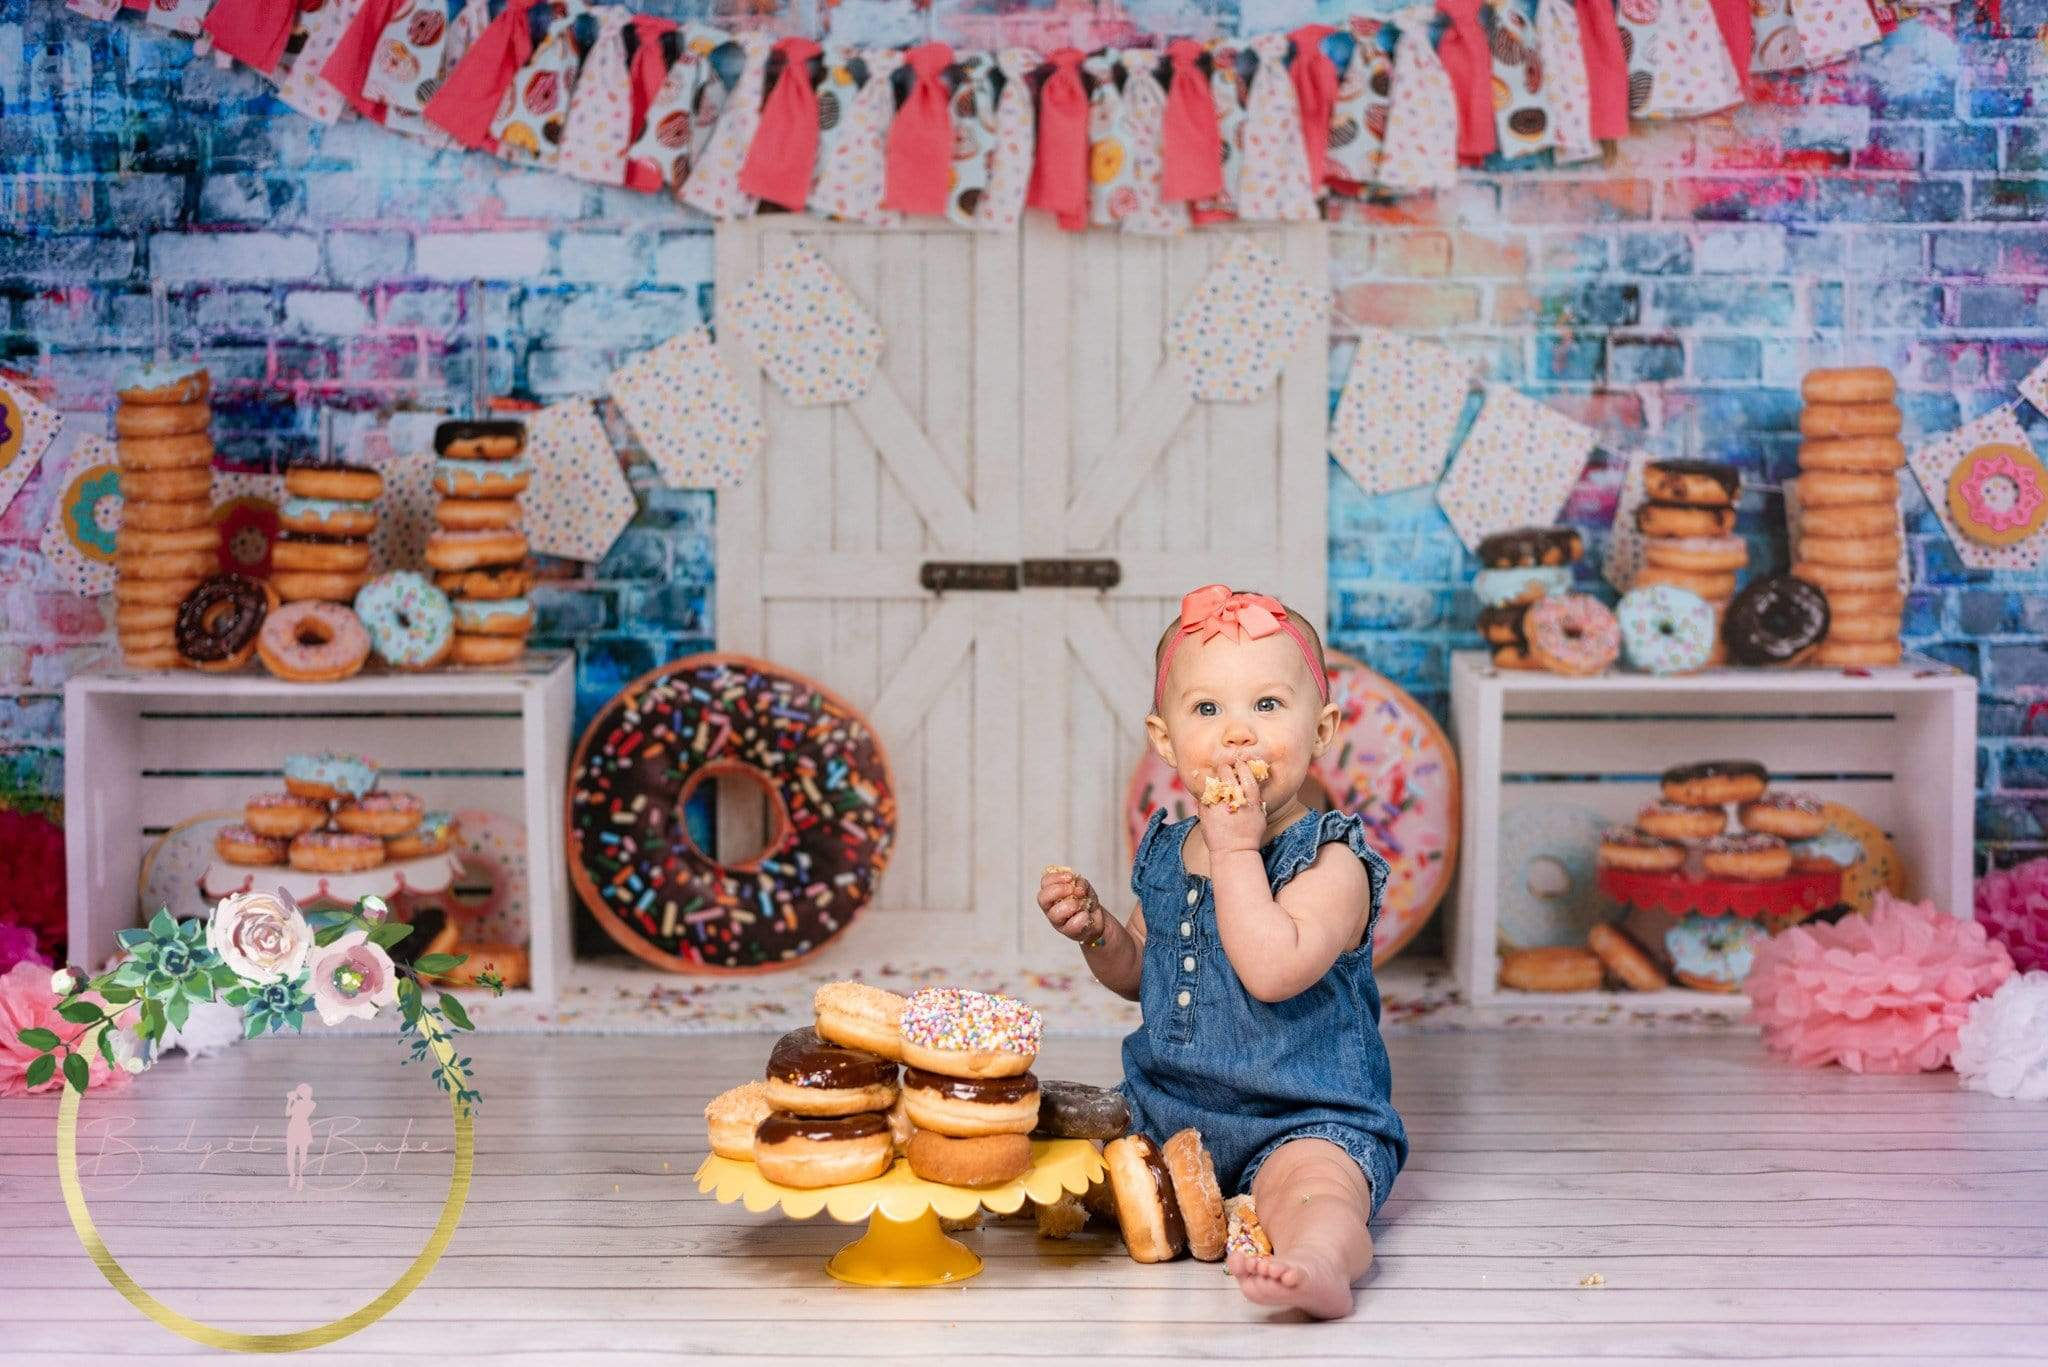 Load image into Gallery viewer, Katebackdrop:Kate Pink Banner Donut White Door Children Backdrop